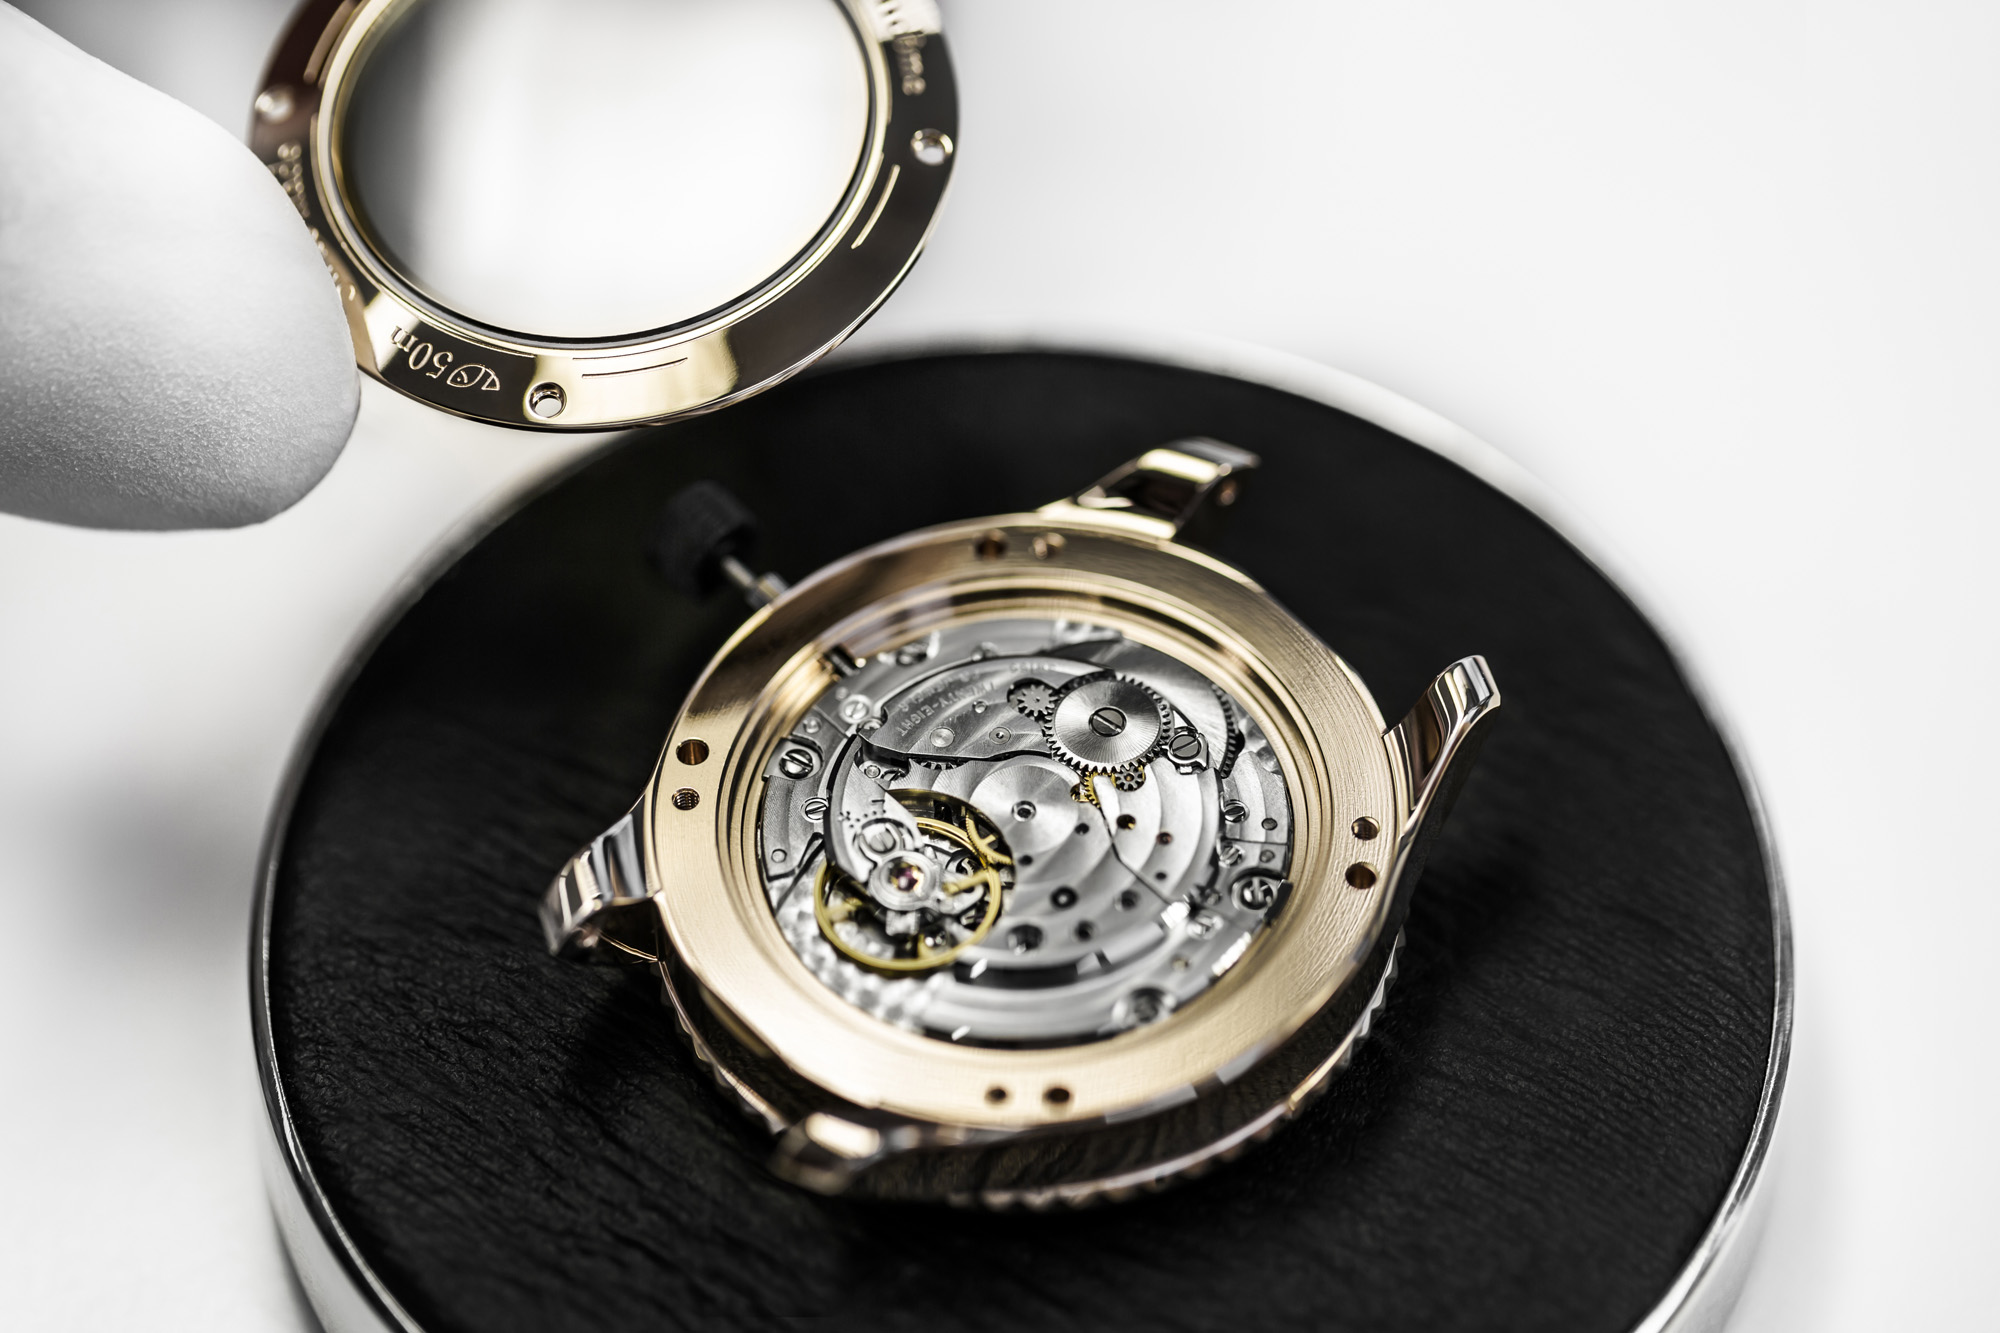 Dior VIII Grand Bal Plisse Soleil - Movement